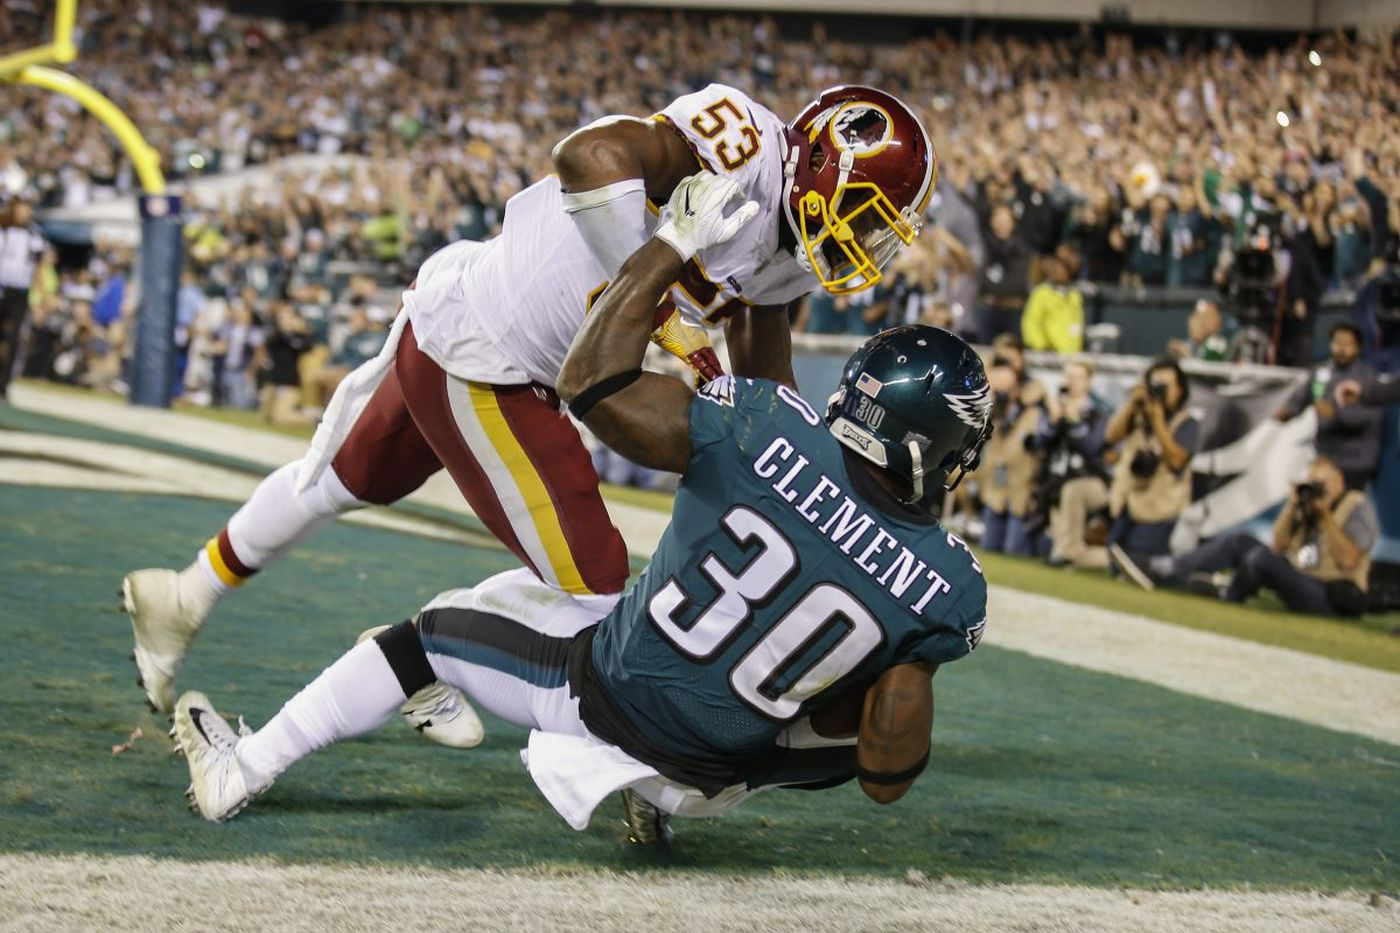 Rookies contribute to Eagles win over Redskins